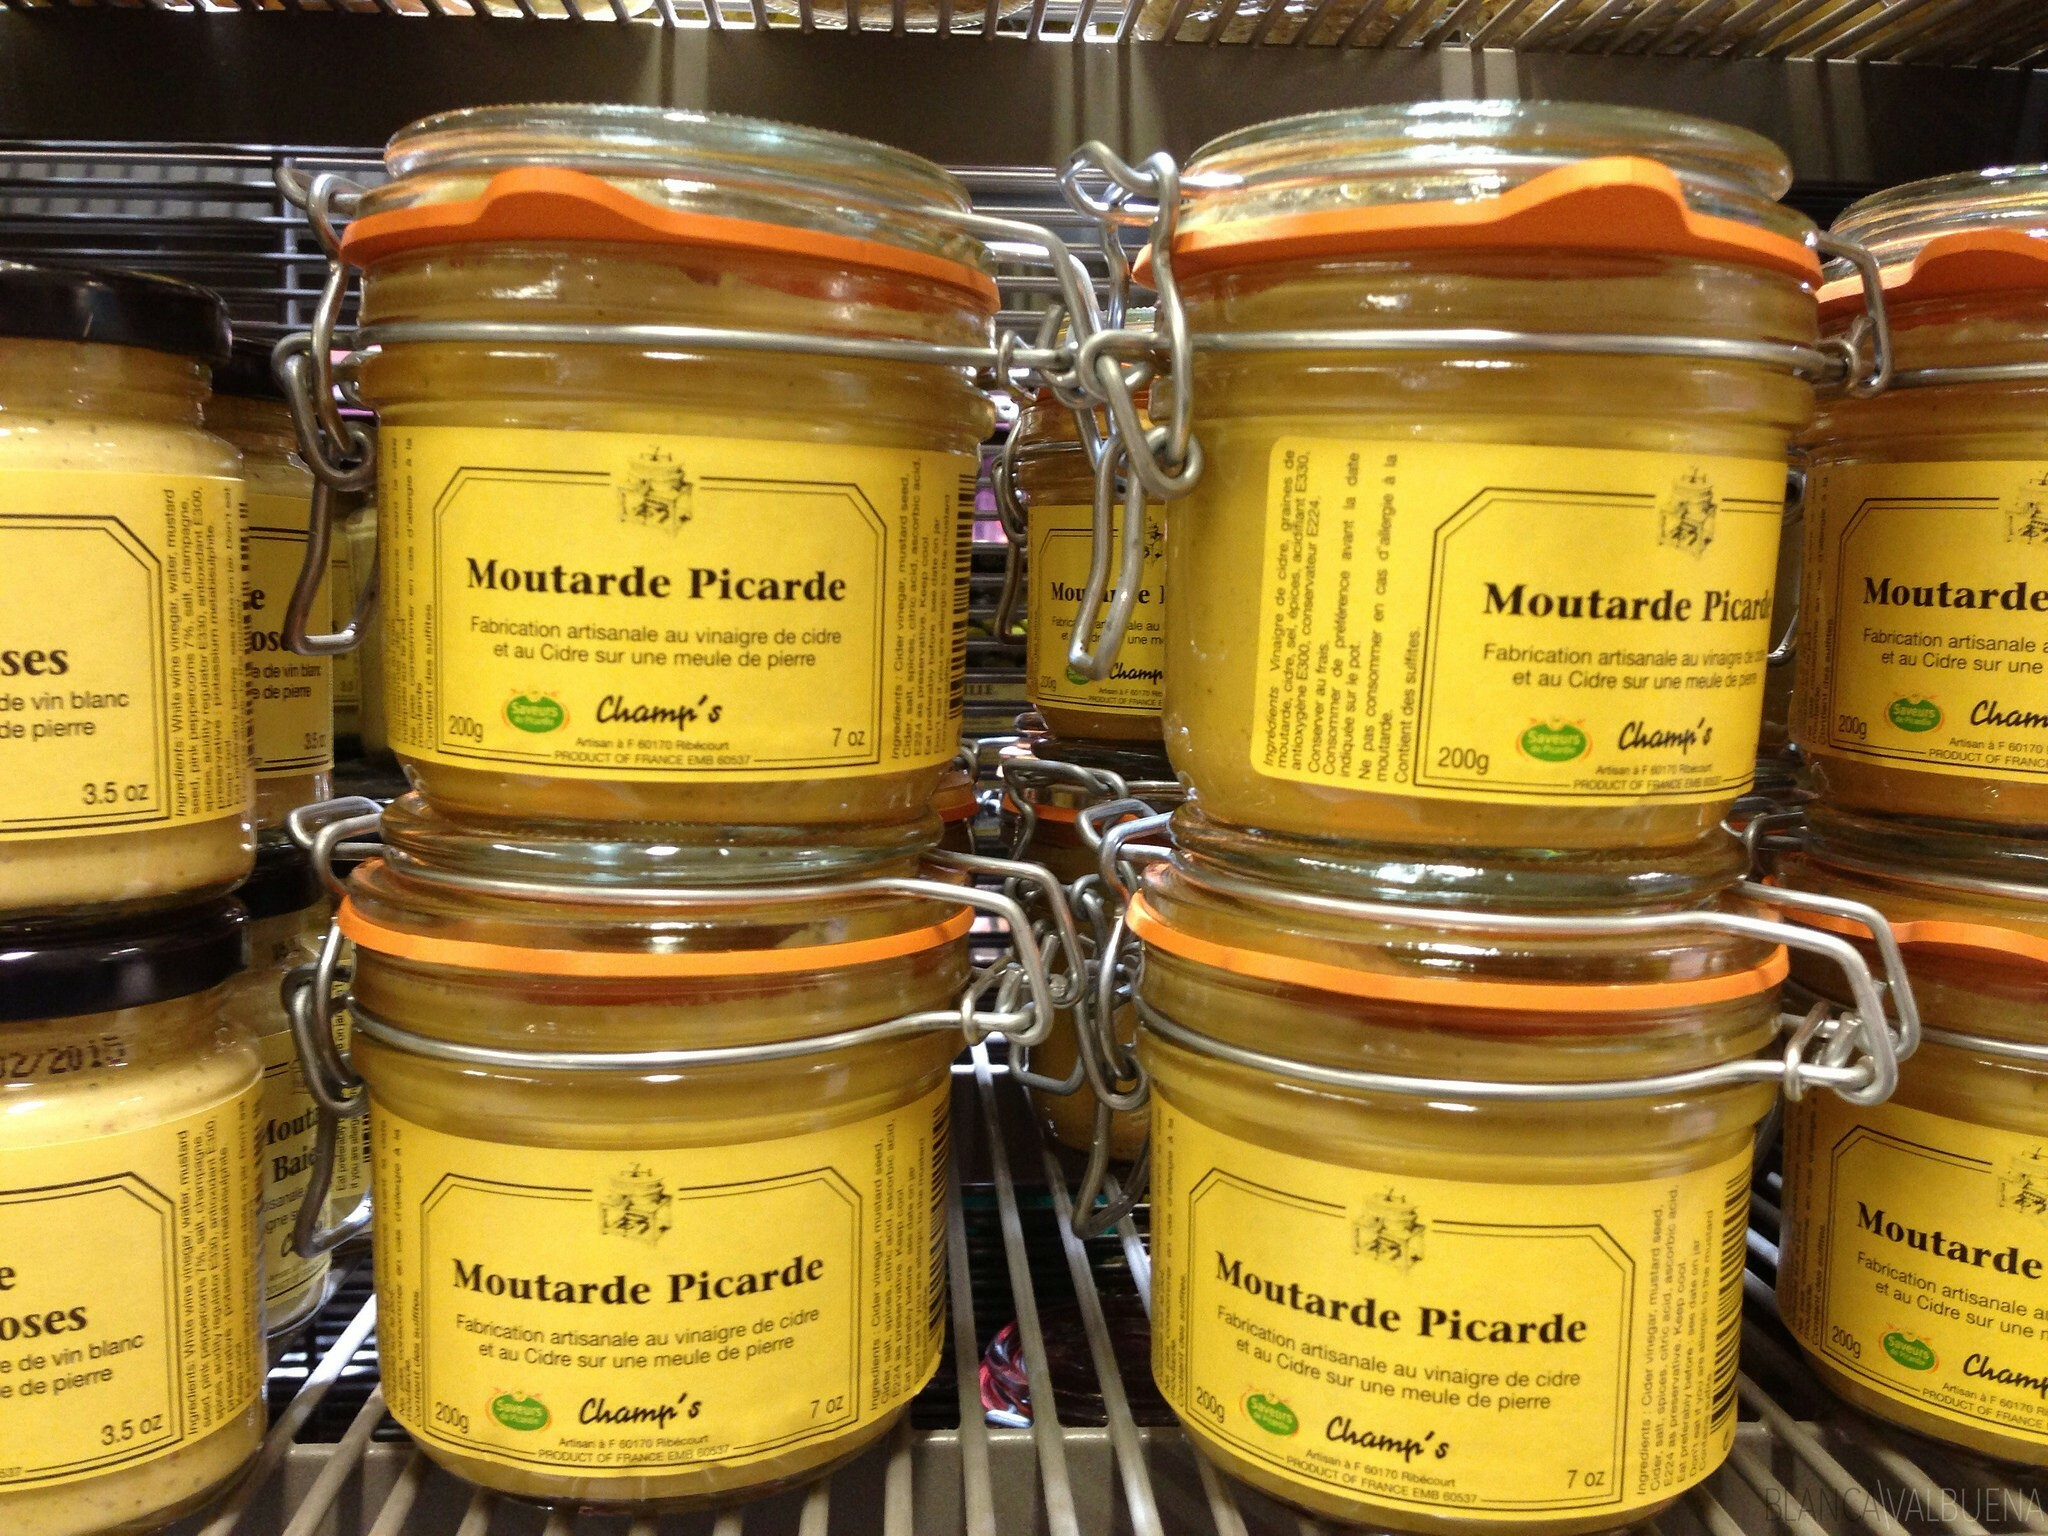 Galeries Lafayette in Paris has a good assortisment of Mustard